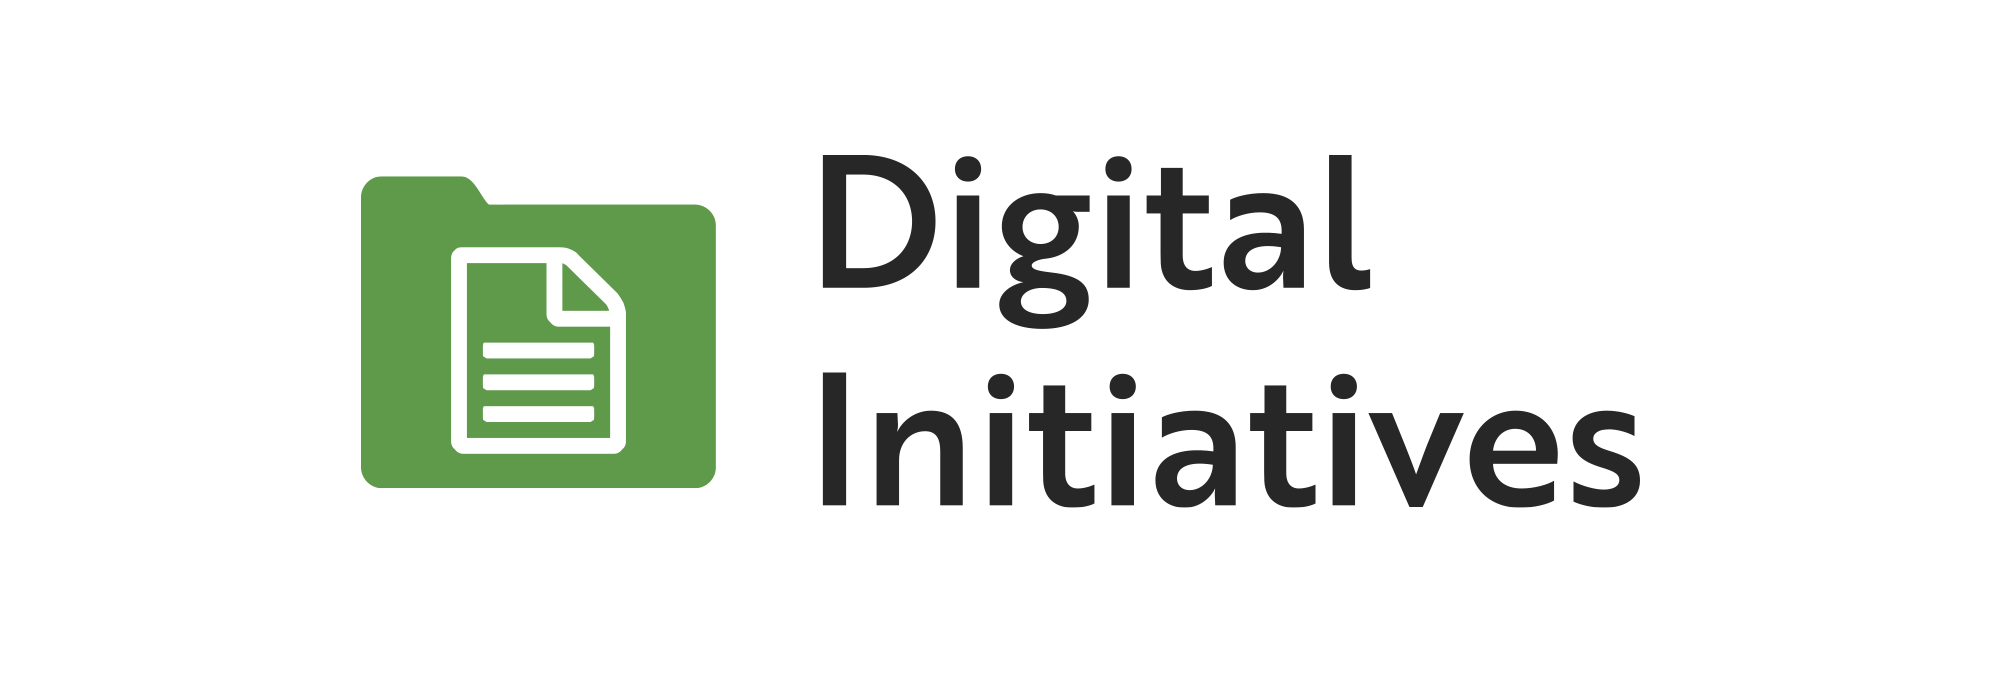 Digital Initiatives logo.